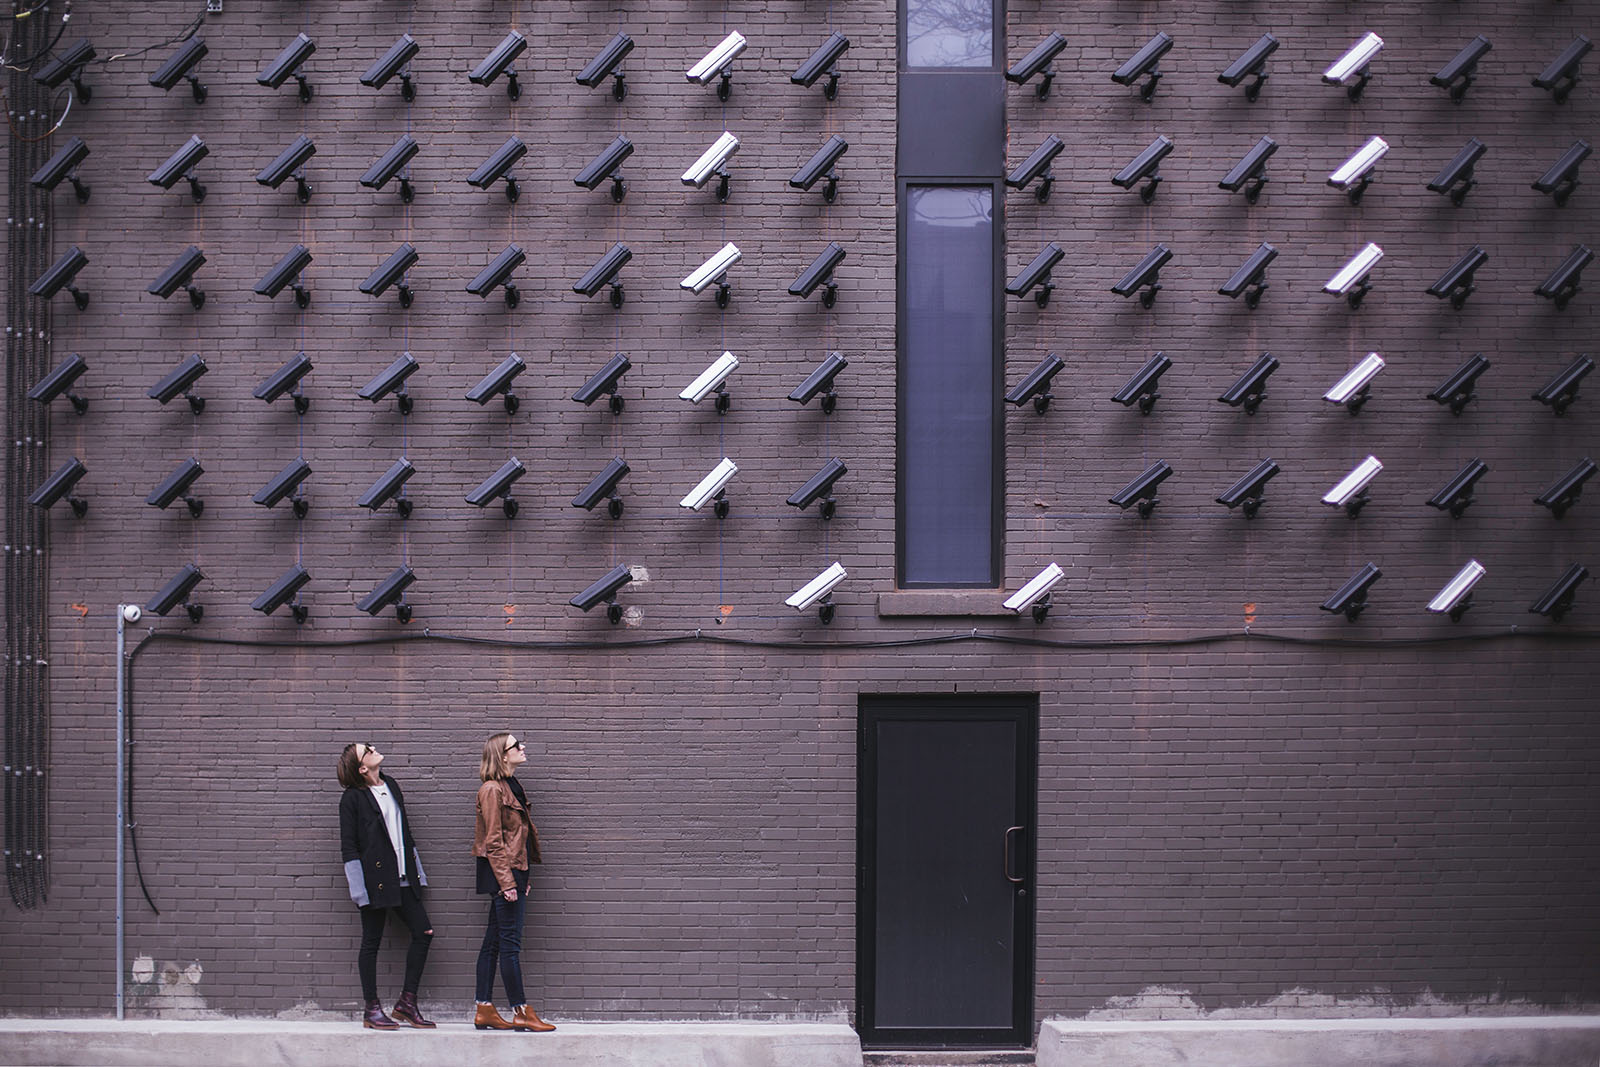 Two people look up at an abundance of CCTV cameras monitoring them.